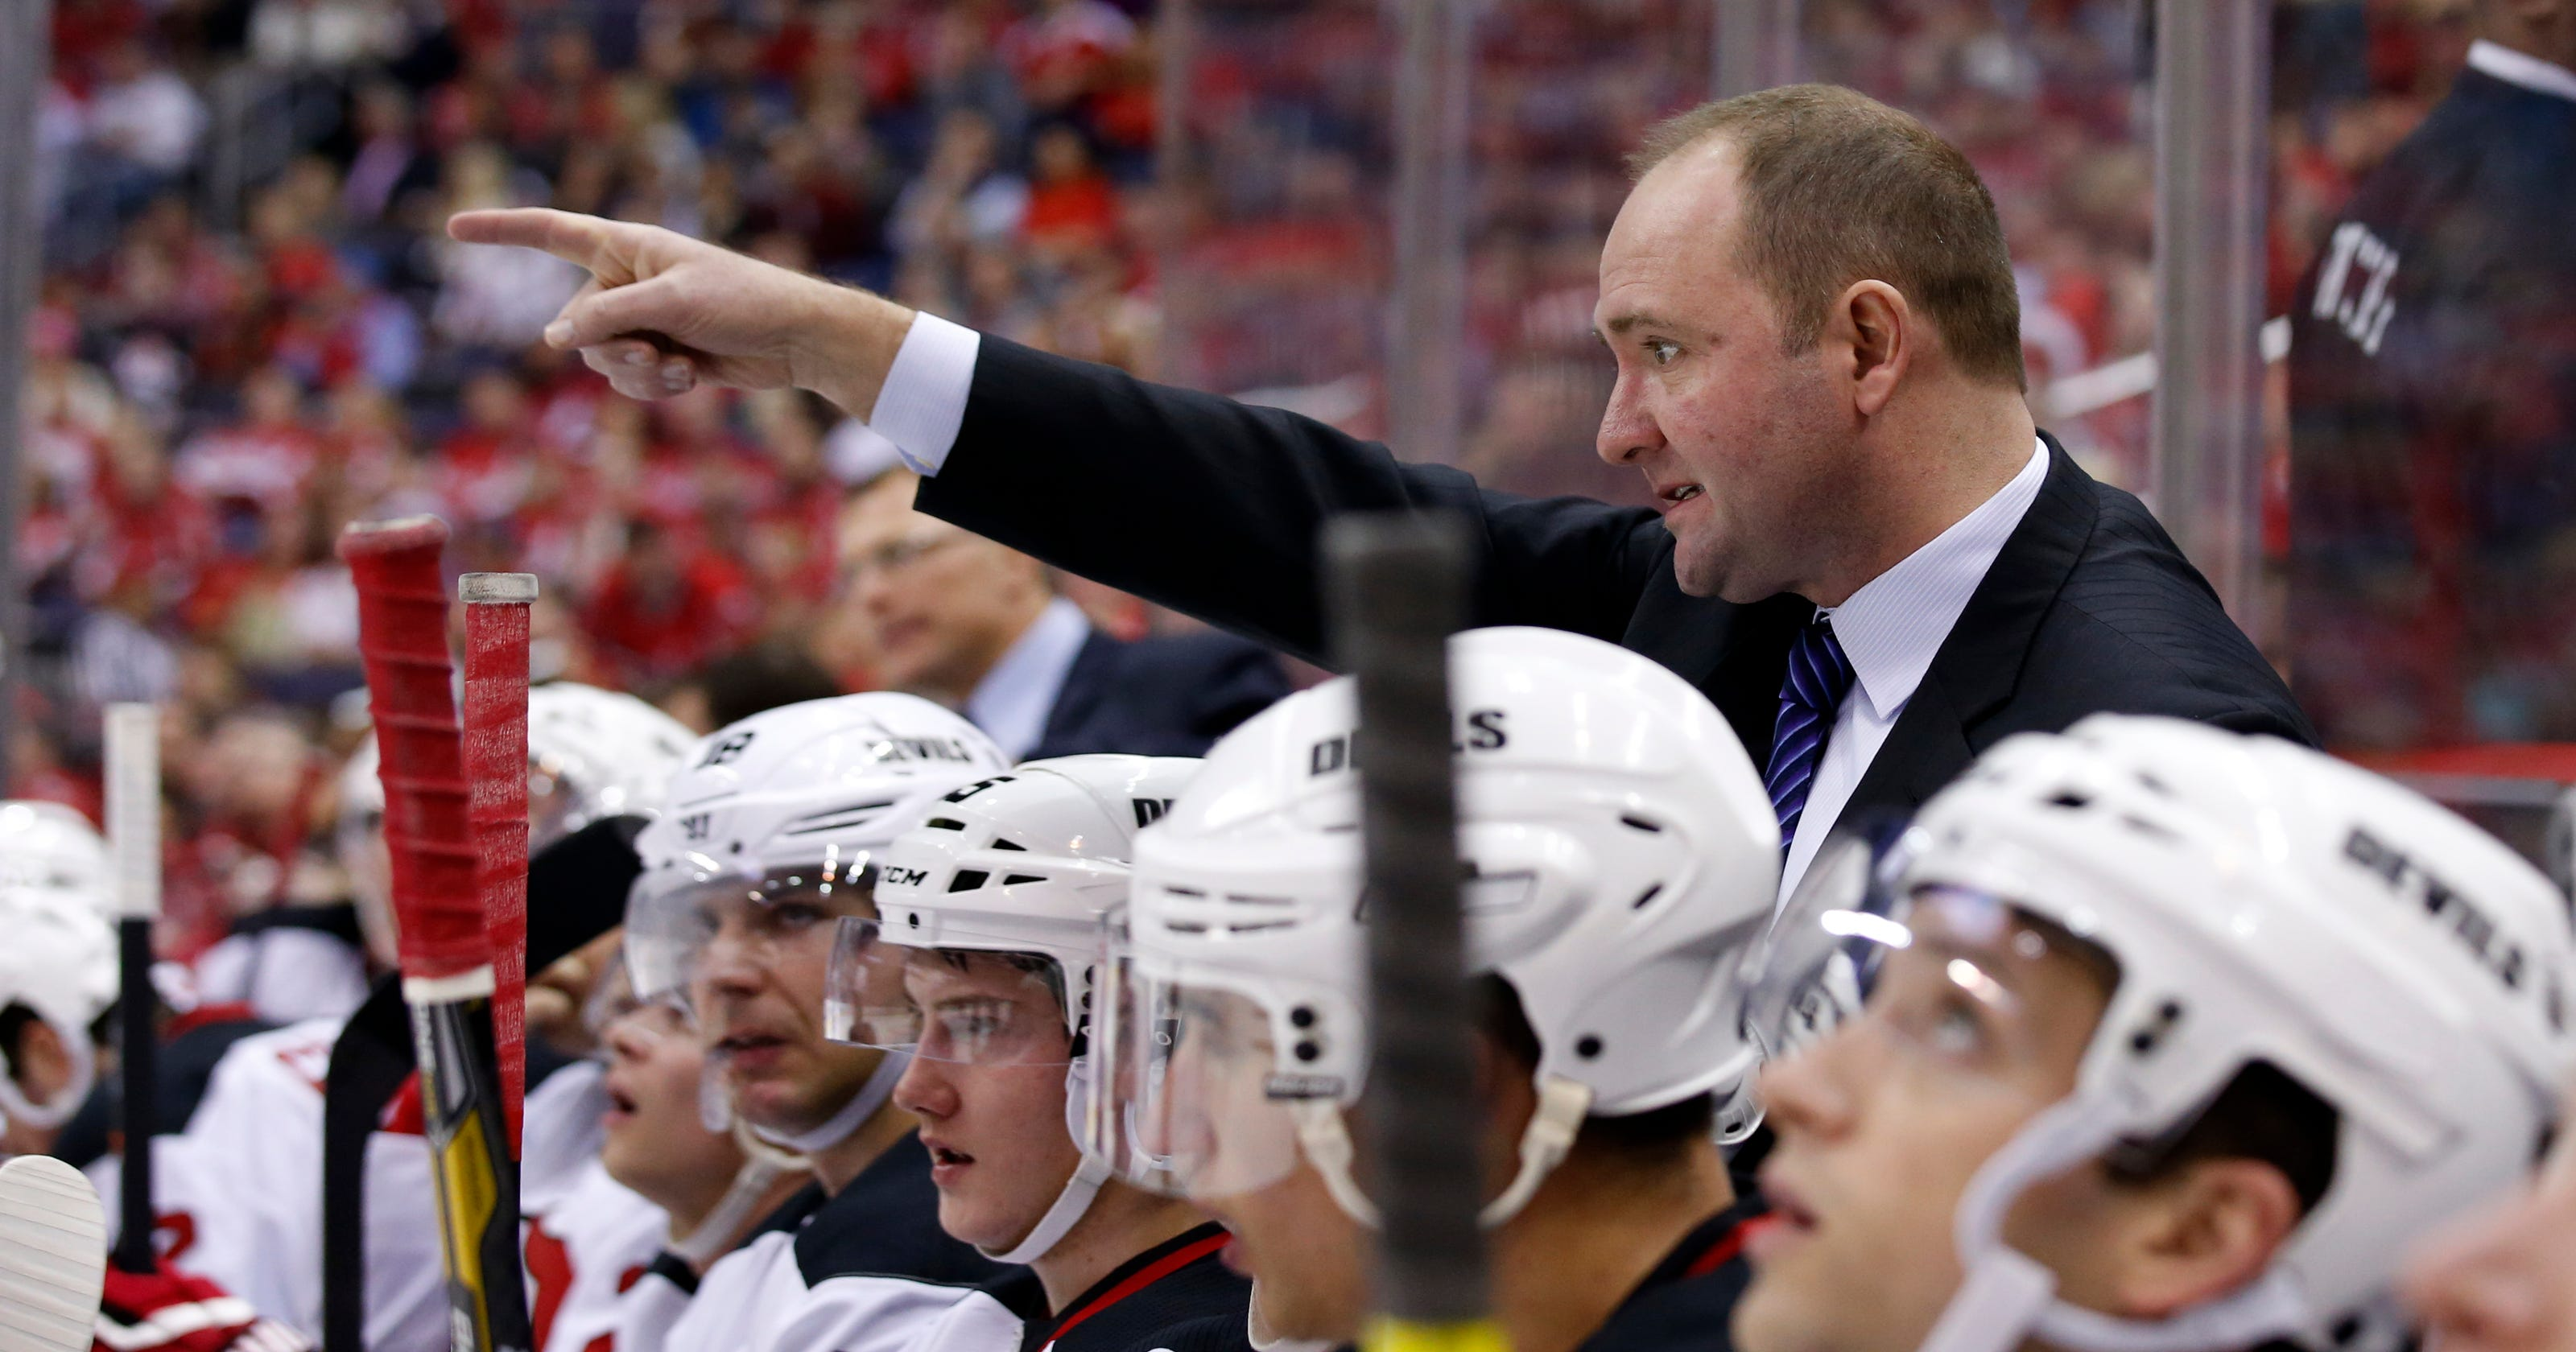 19b43995f Sharks officially announce Peter DeBoer hired as new coach